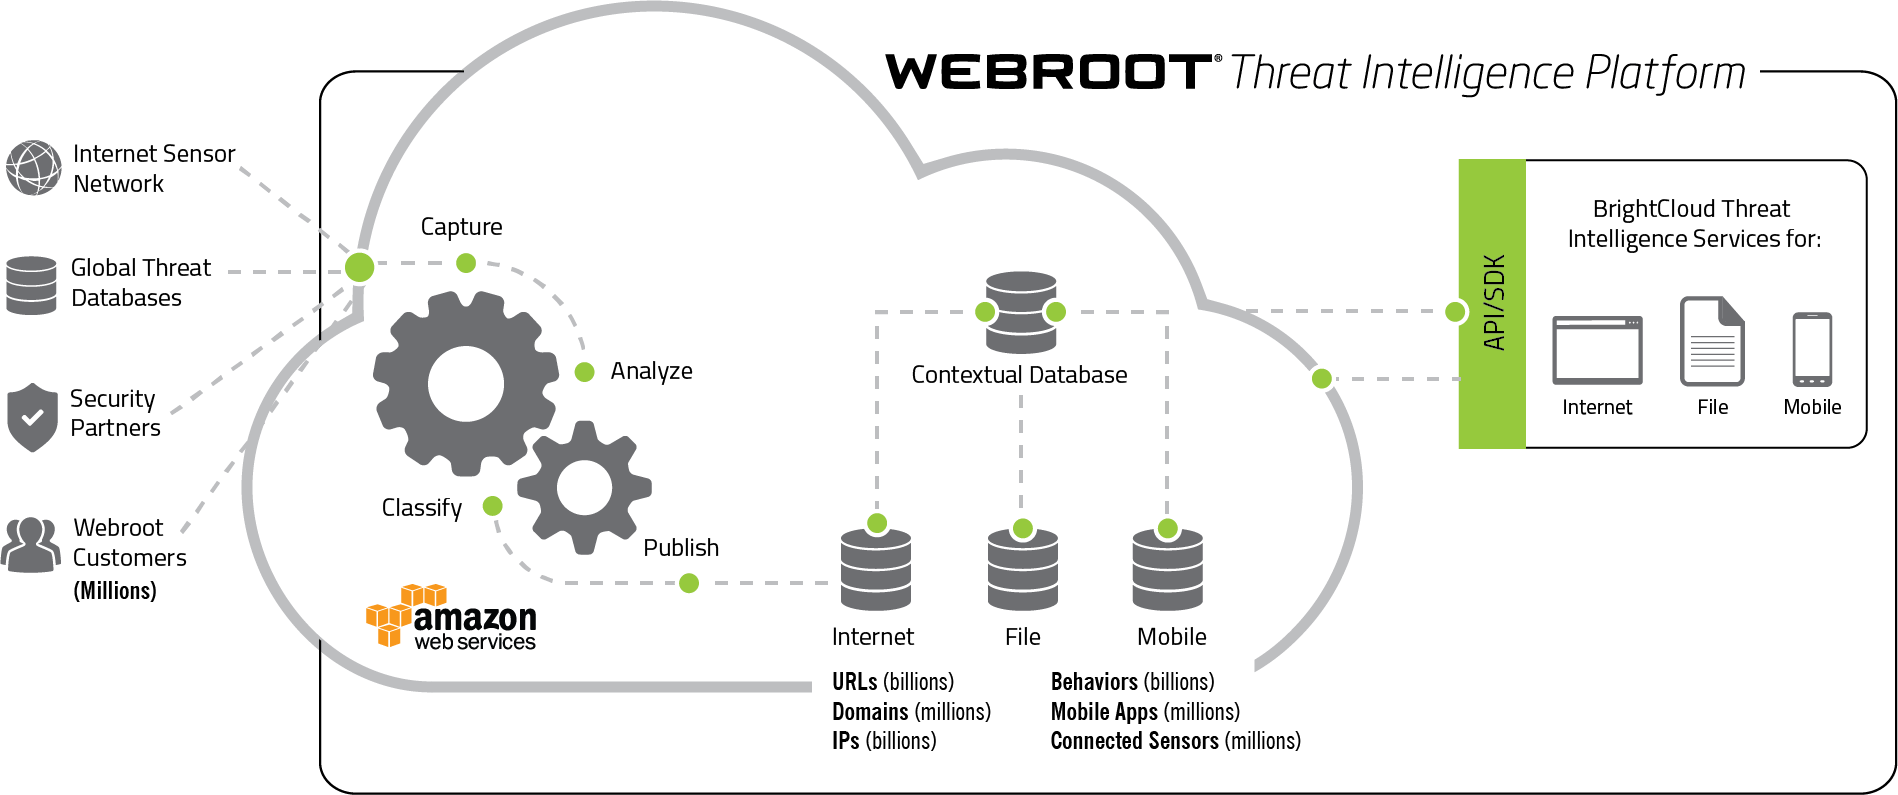 Webroot Cloud Based Protection For Home Users And Businesses